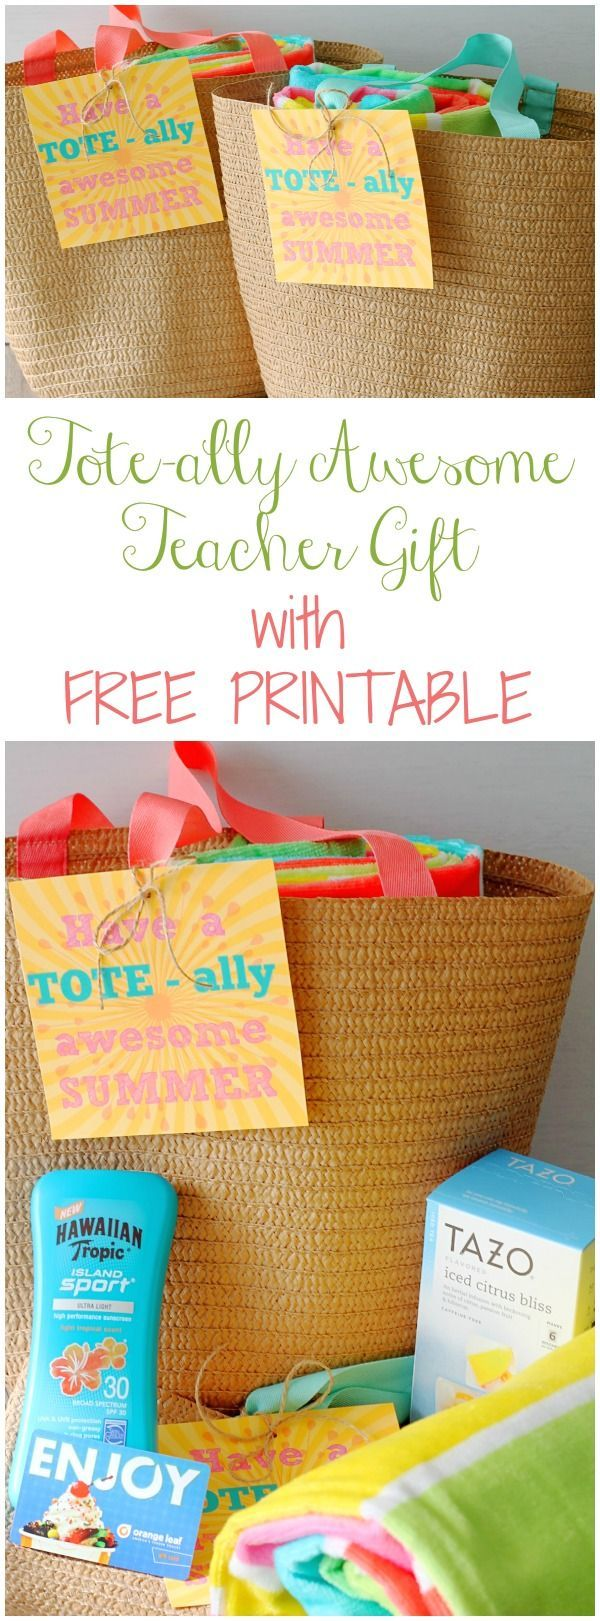 Totally Awesome Teacher Gift Free Printable by Foodtastic Mom #teachergifts